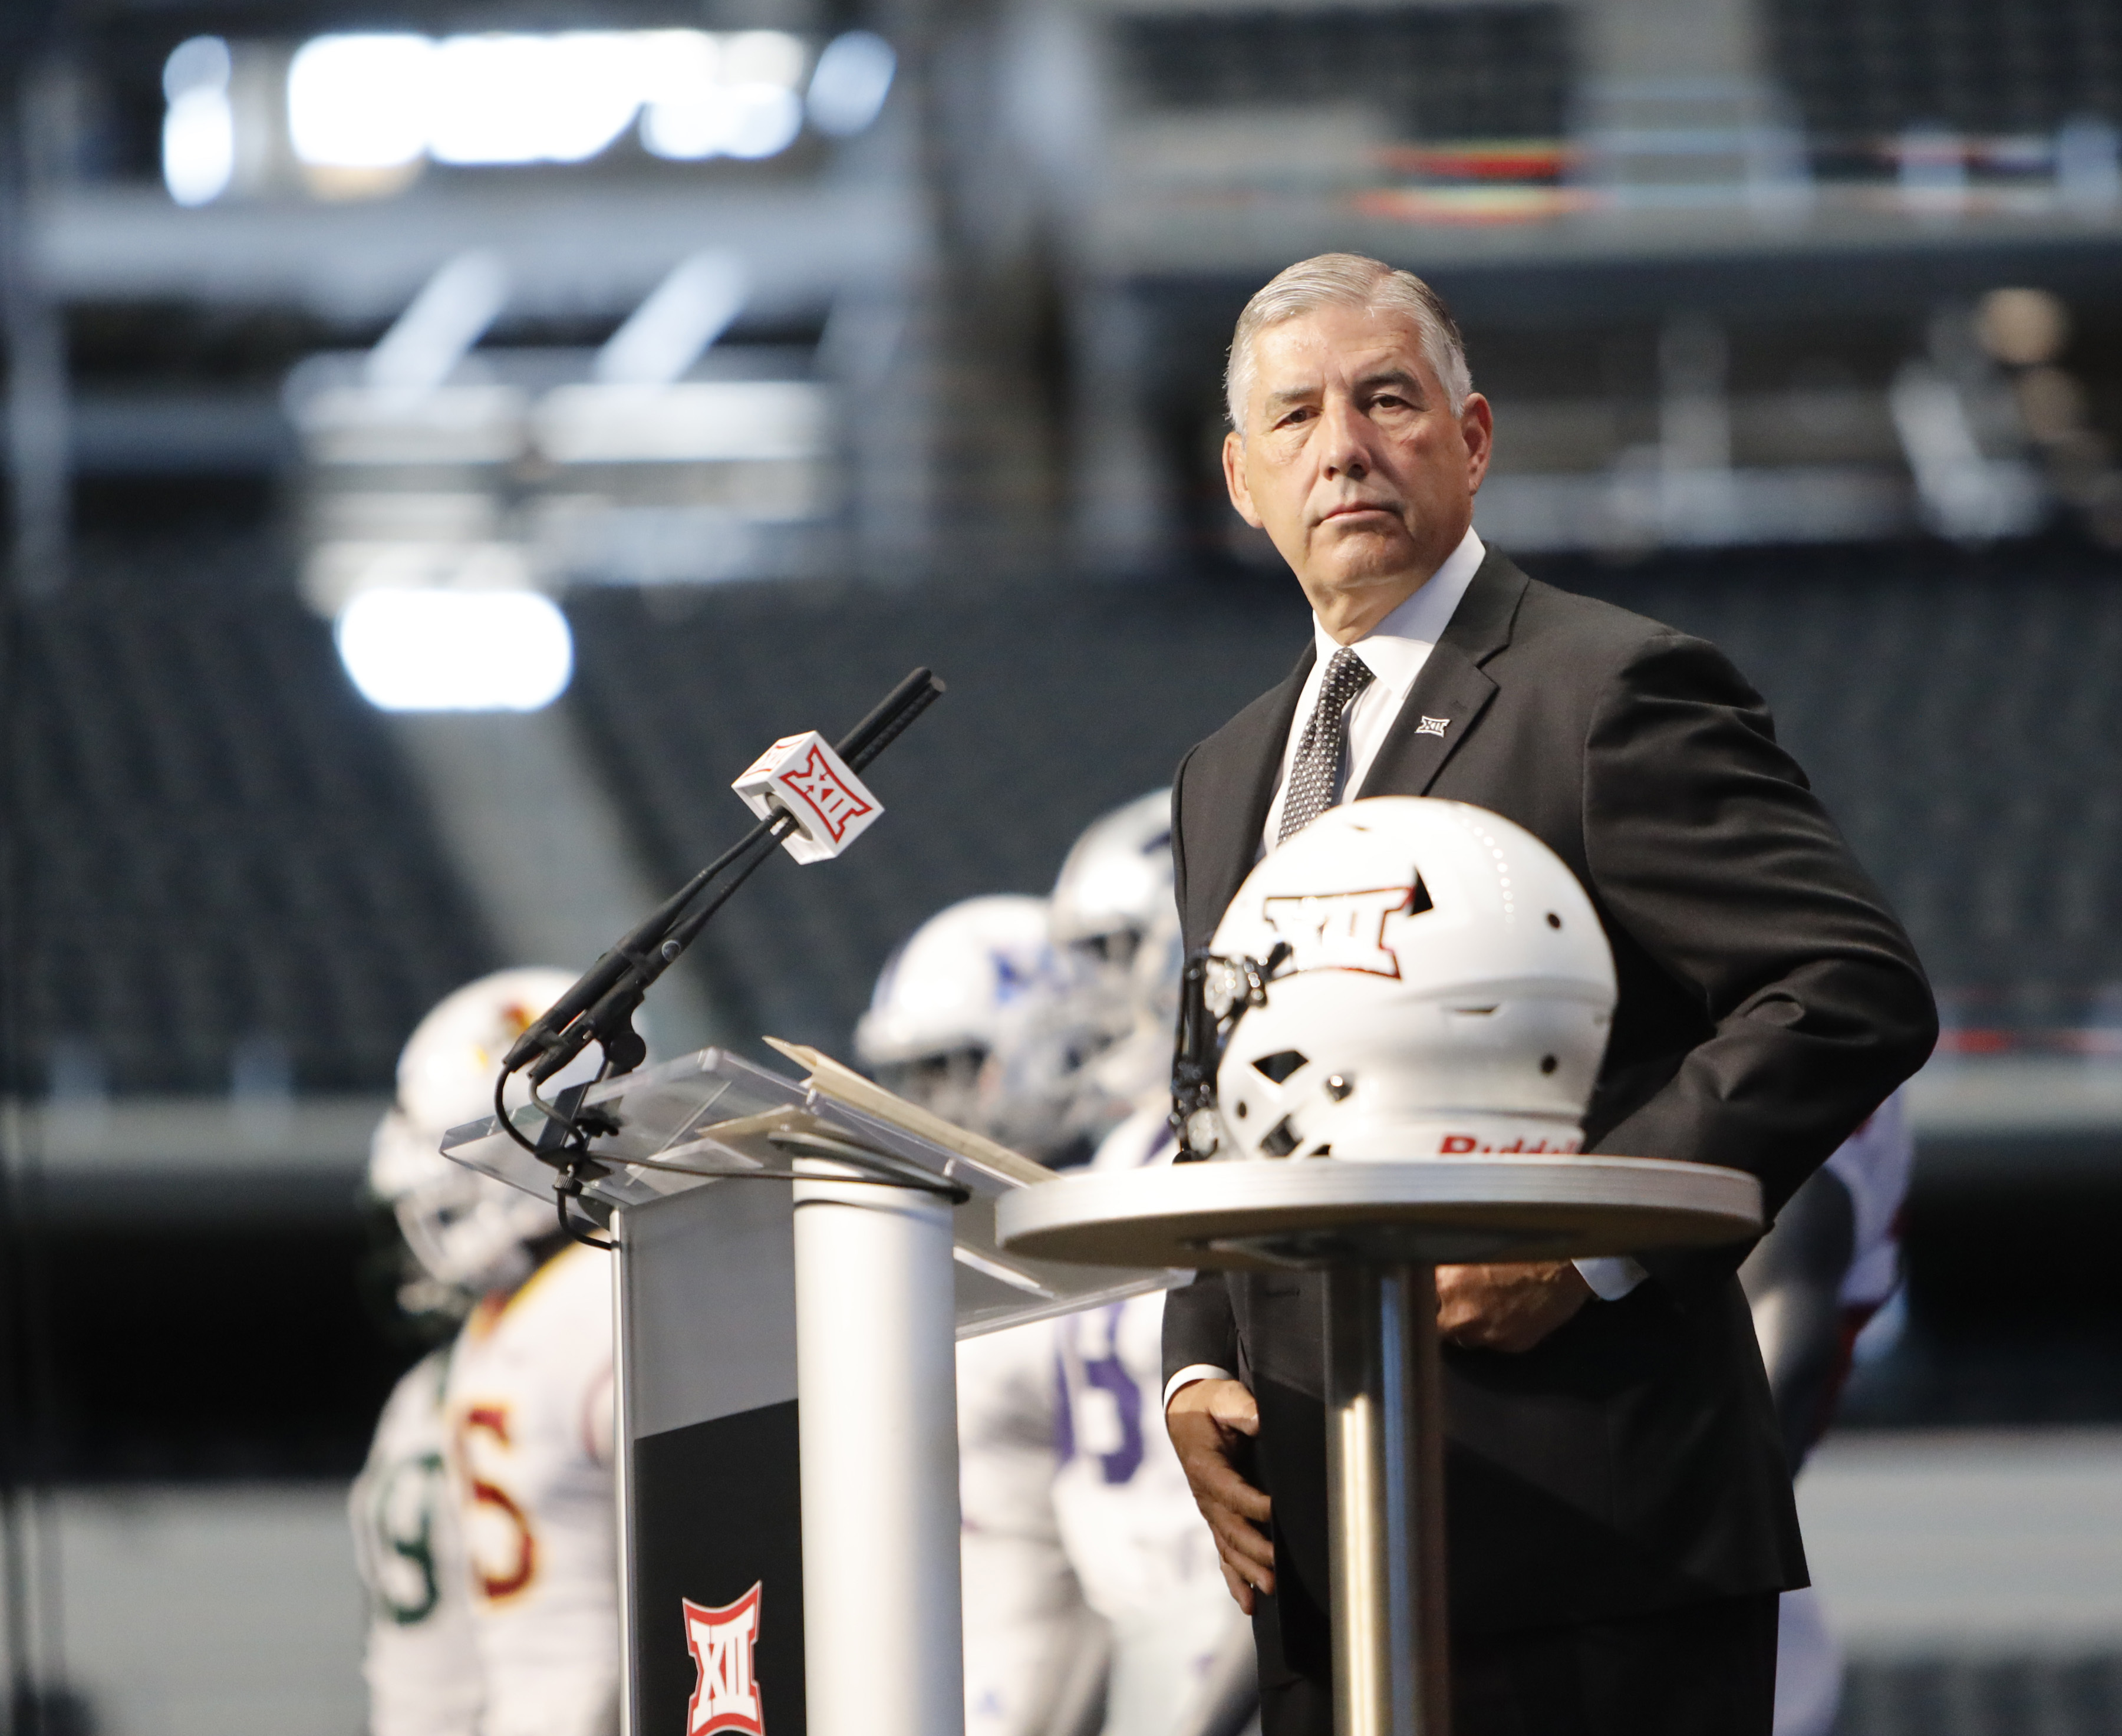 Big 12 Conference commissioner Bob Bowlsby takes the stage on the first day of Big 12 Conference NCAA college football media days Monday, July 15, 2019, at AT&T Stadium in Arlington, Texas. (AP Photo/David Kent)